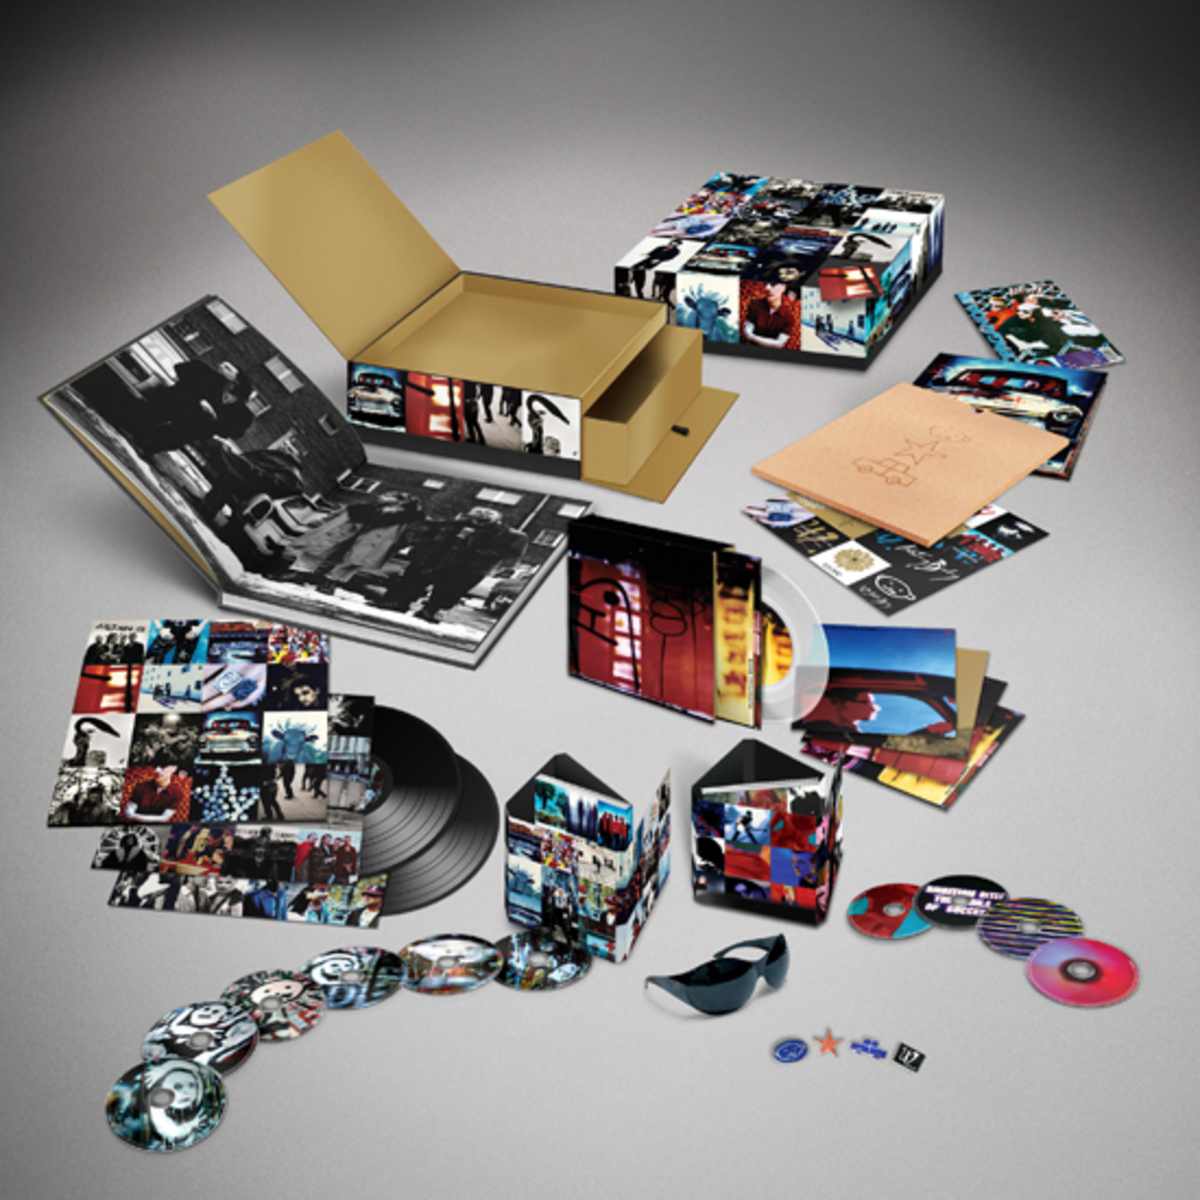 U2 Achtung Baby uber deluxe edition